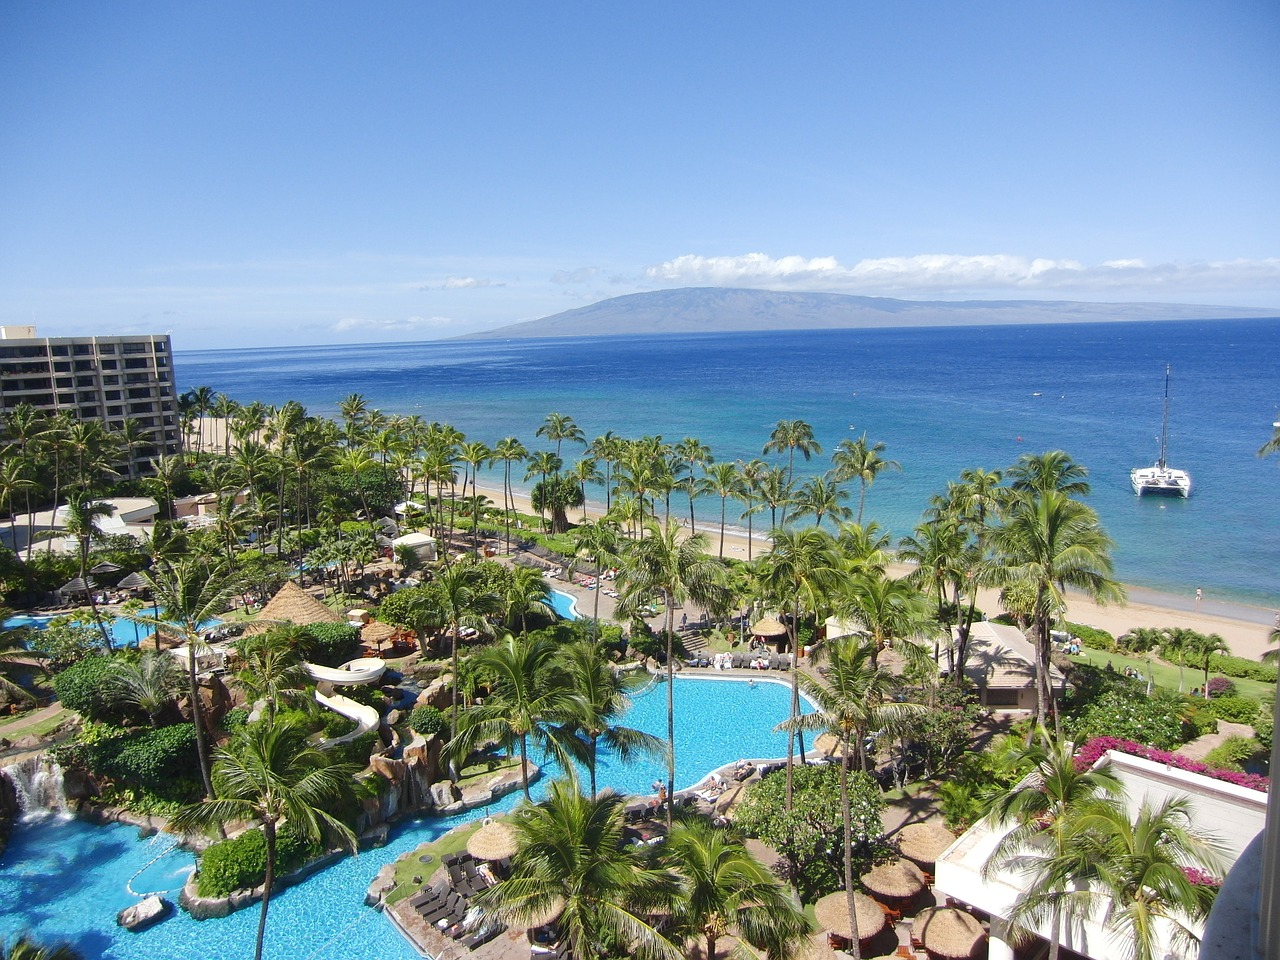 Water use plan in Maui, Hawaii, revisited